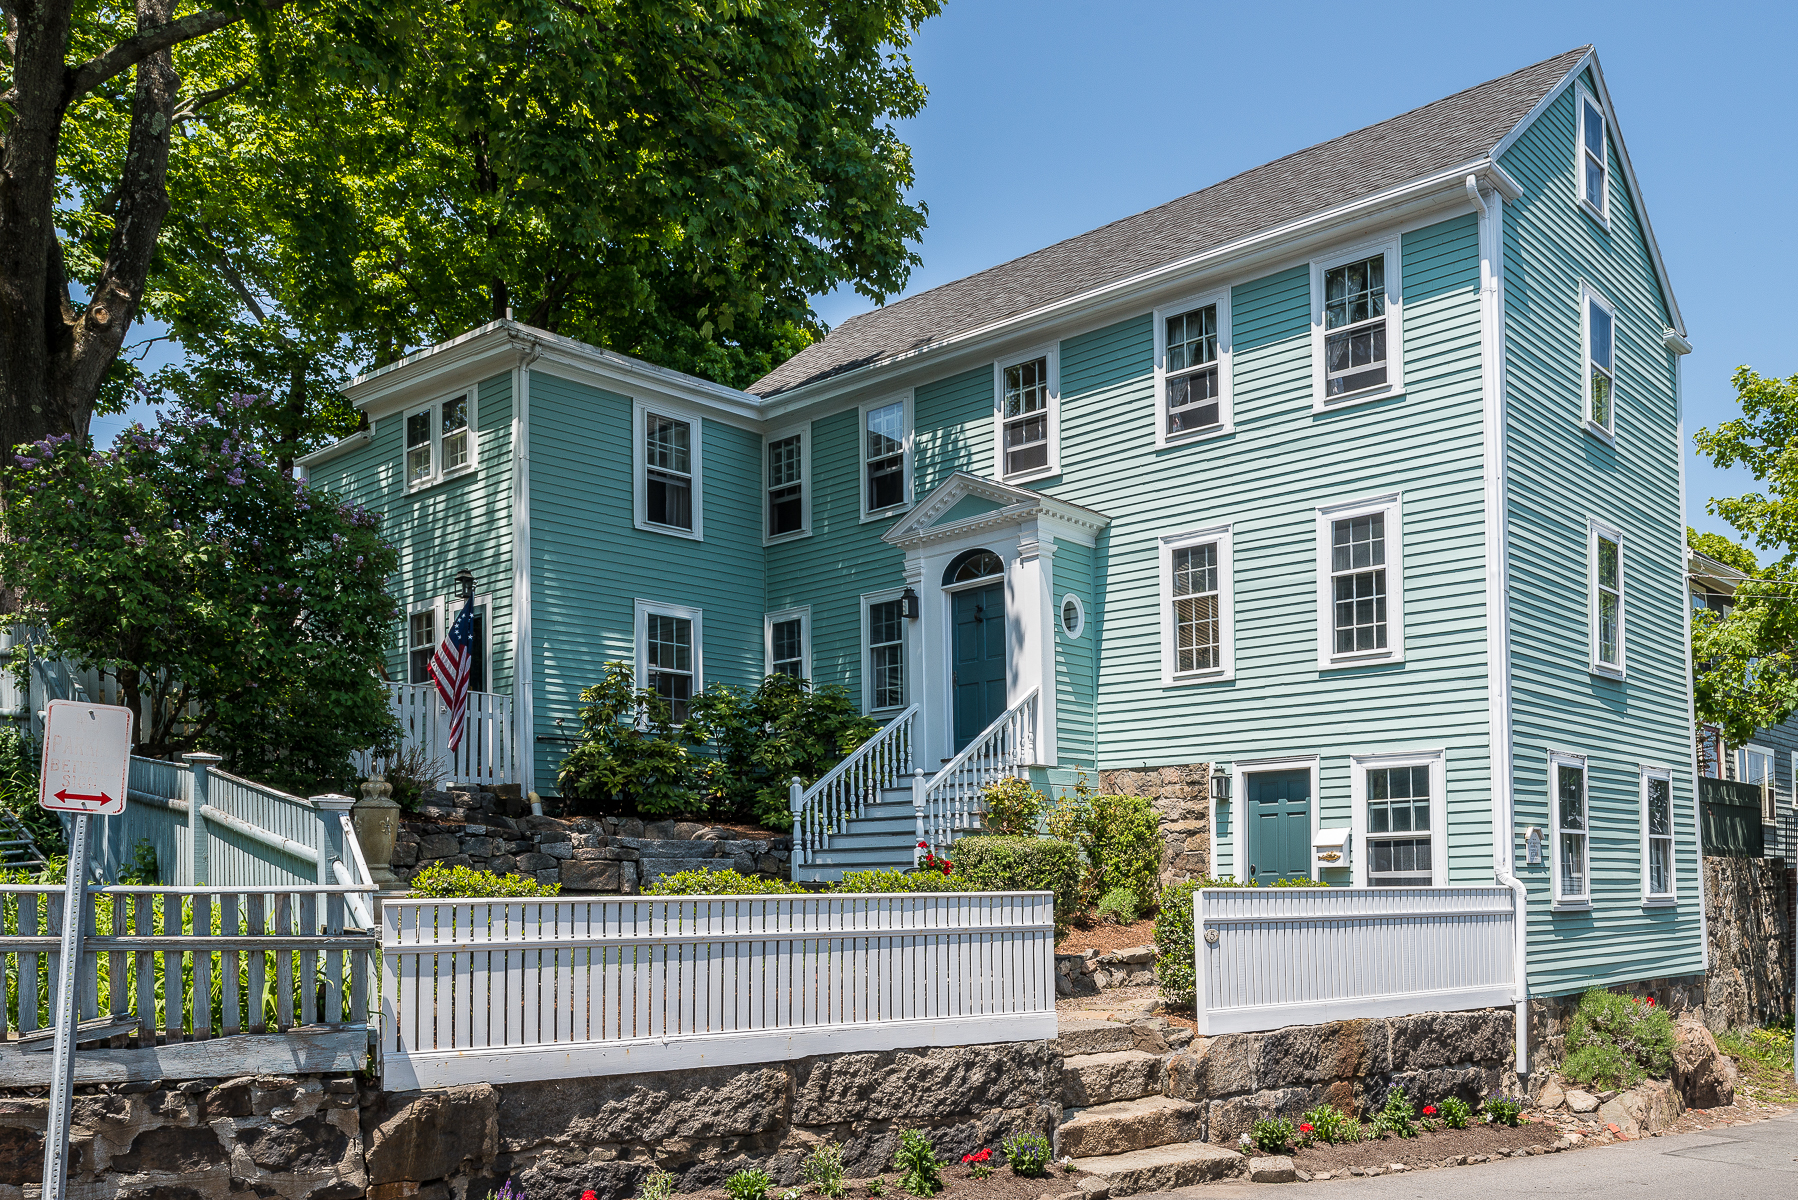 Single Family Home for Sale at Renovated Antique in the Heart of Marblehead 5 Washington Steet Marblehead, Massachusetts 01945 United States